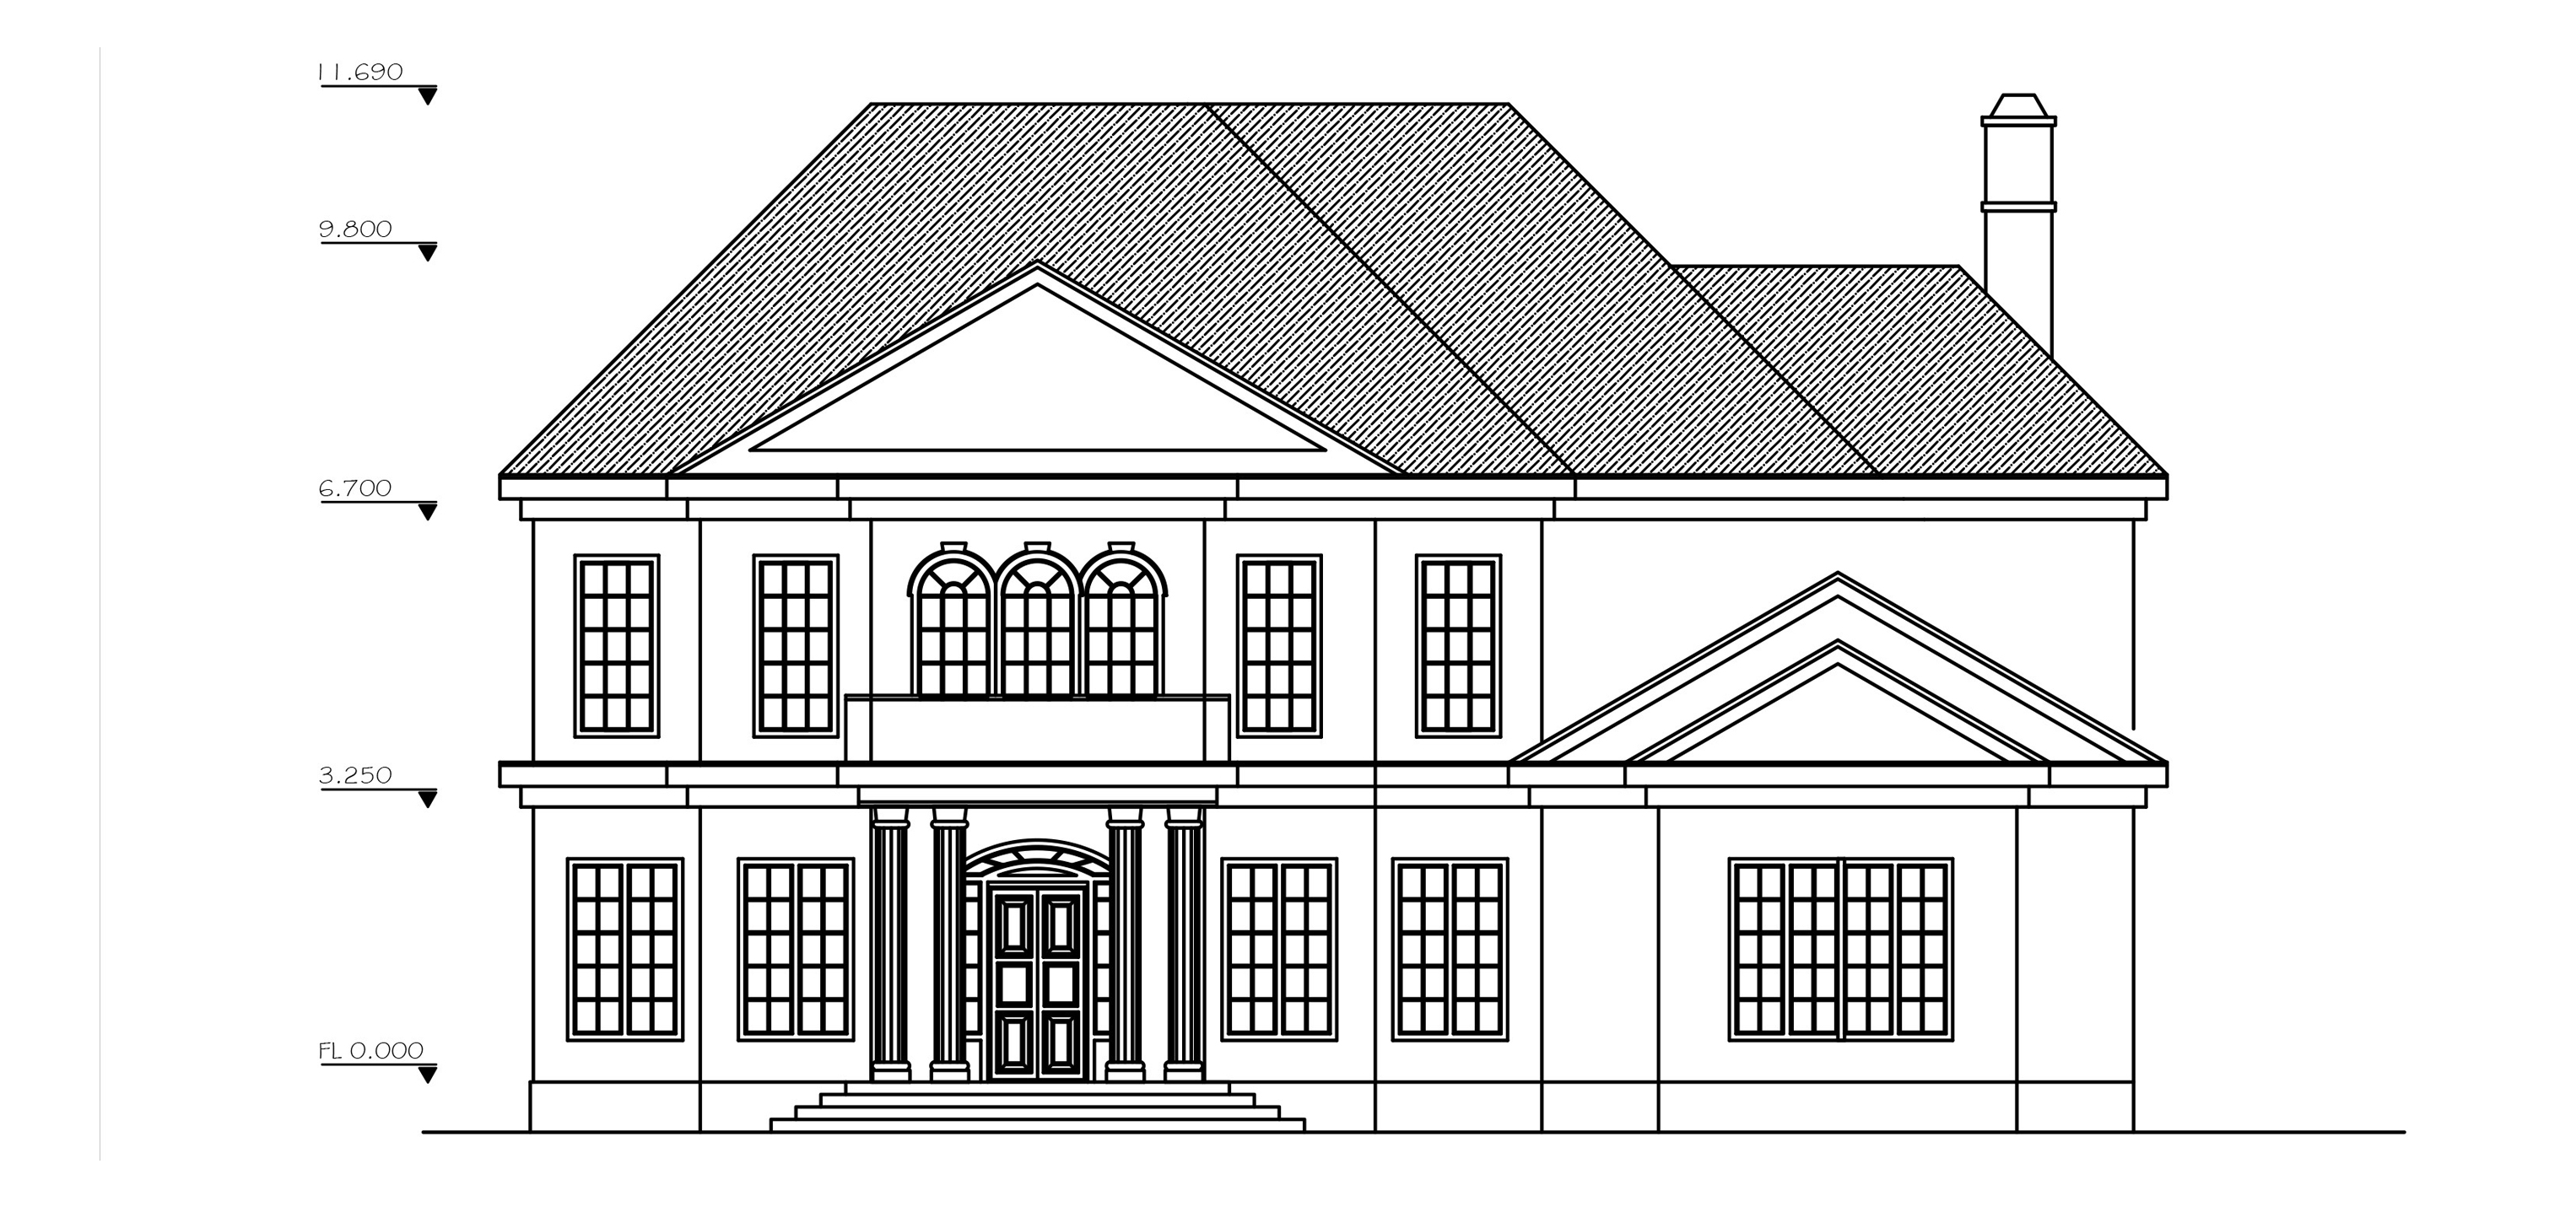 Front Elevation Design In Autocad : Double story archives dwg net cad blocks and house plans